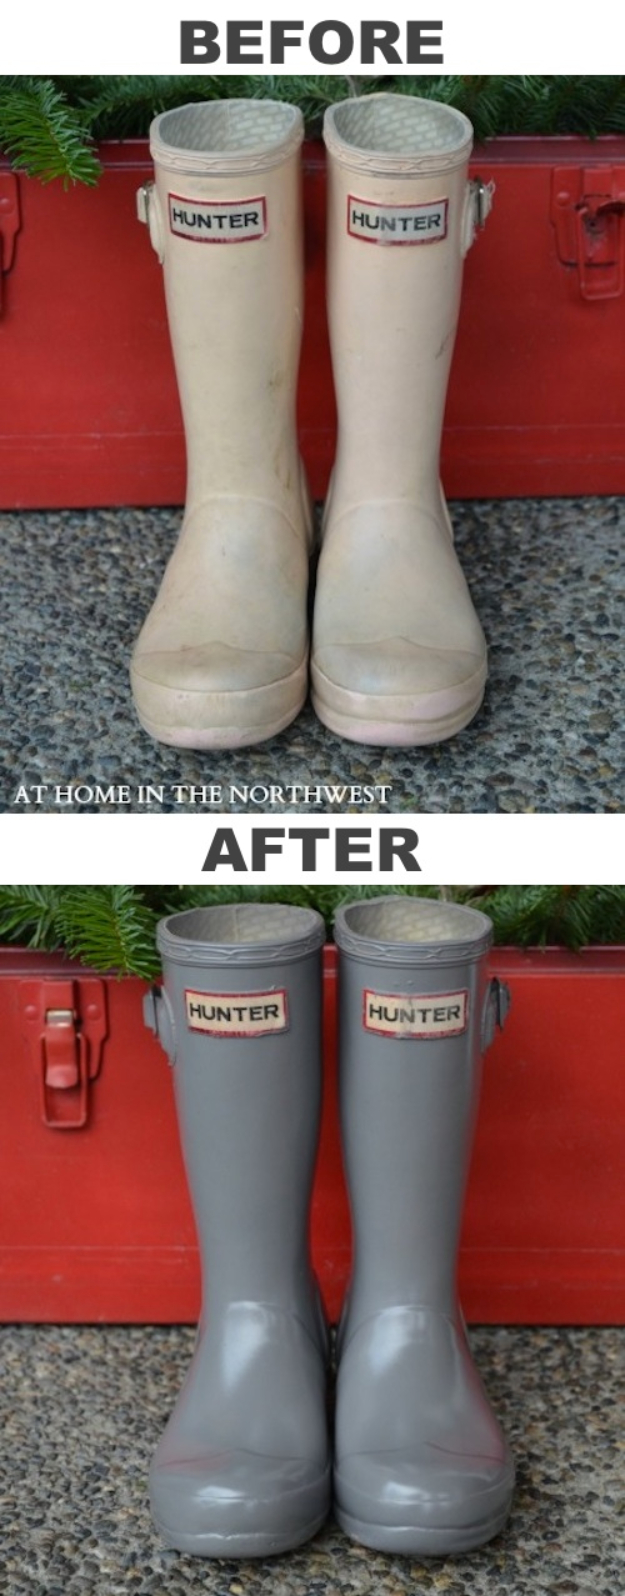 33 Cool DIYs With Spray Paint - Revamped Rubber Boots - Easy Spray Paint Decor, Fun Do It Yourself Spray Paint Ideas, Cool Spray Paint Projects To Try, Upcycled And Repurposed, Restore Old Items With Spray Paint